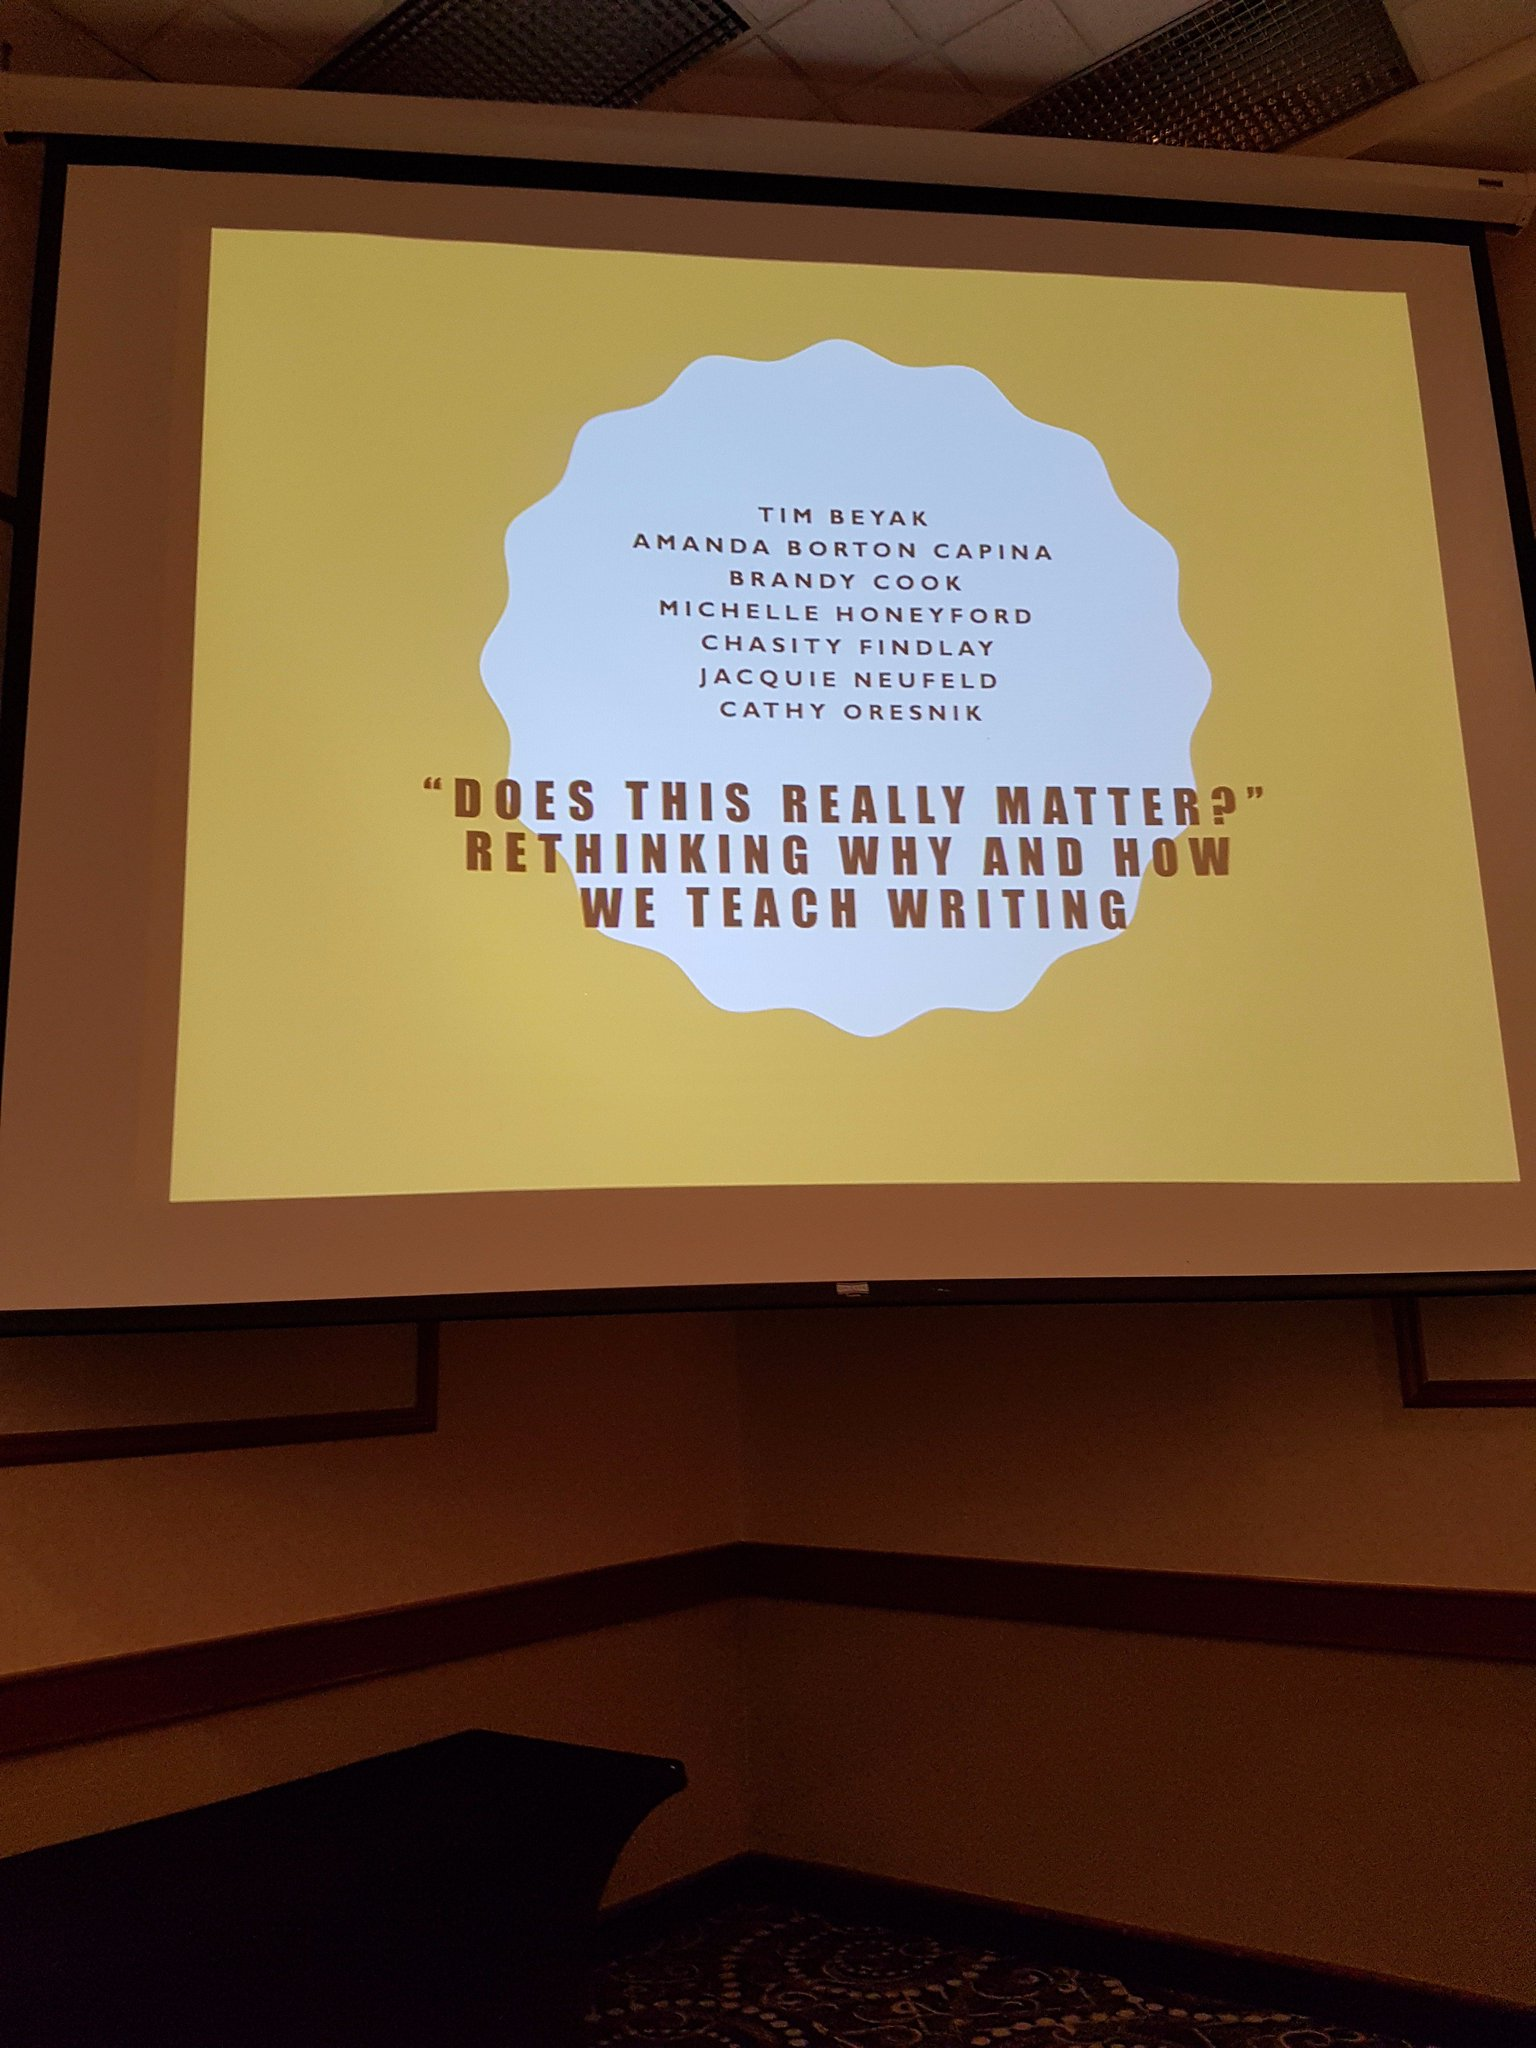 Thrilled to be presenting at the MRA summit! Rethinking how and why we teach writing. #mrasummit @mra_mb @tyndallparkWSD https://t.co/5zfCw2IXk7